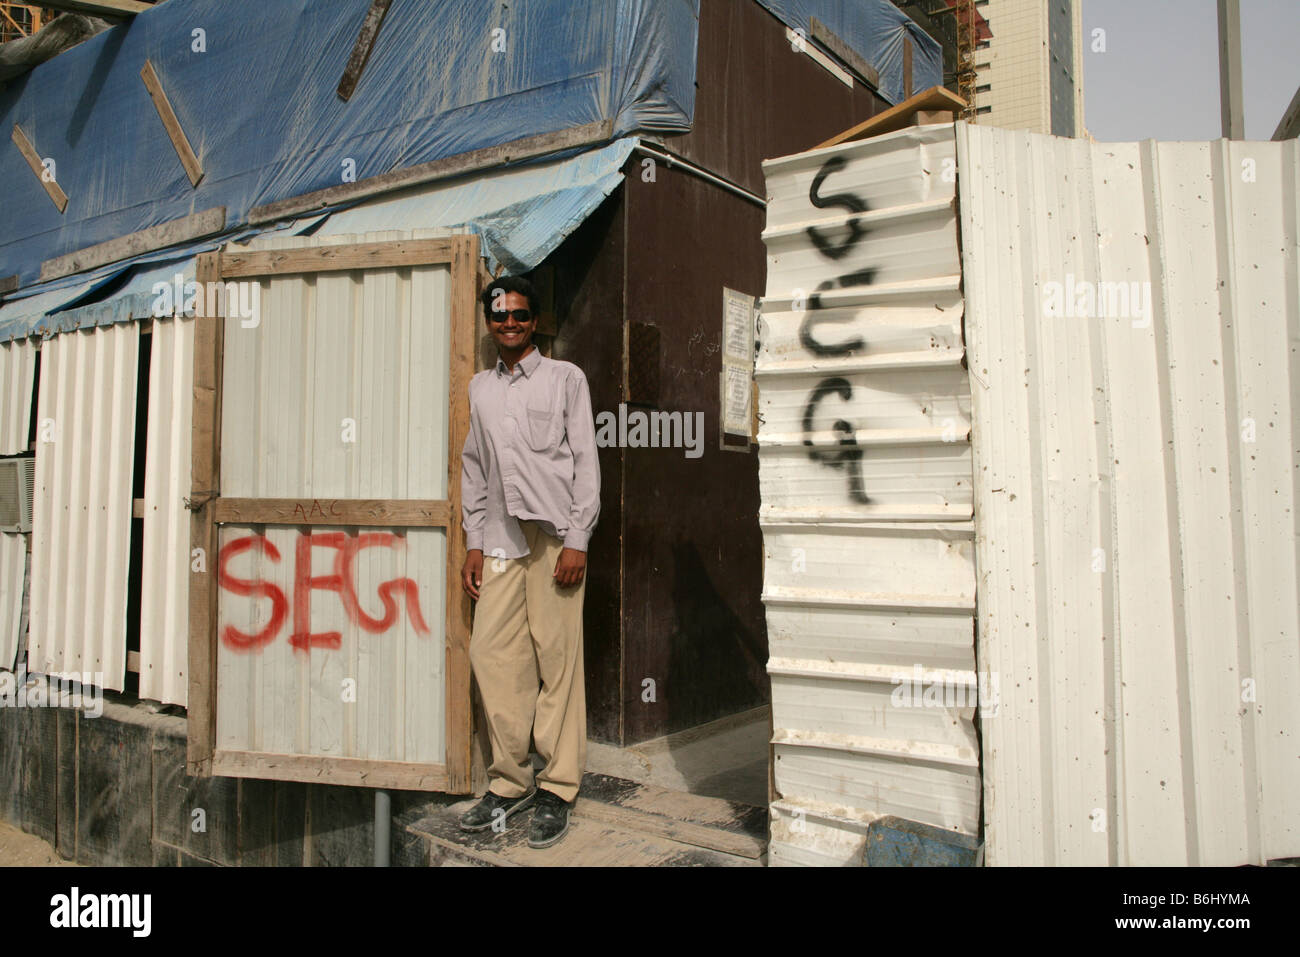 South Asian migrant worker at a construction site in Doha, Qatar. - Stock Image